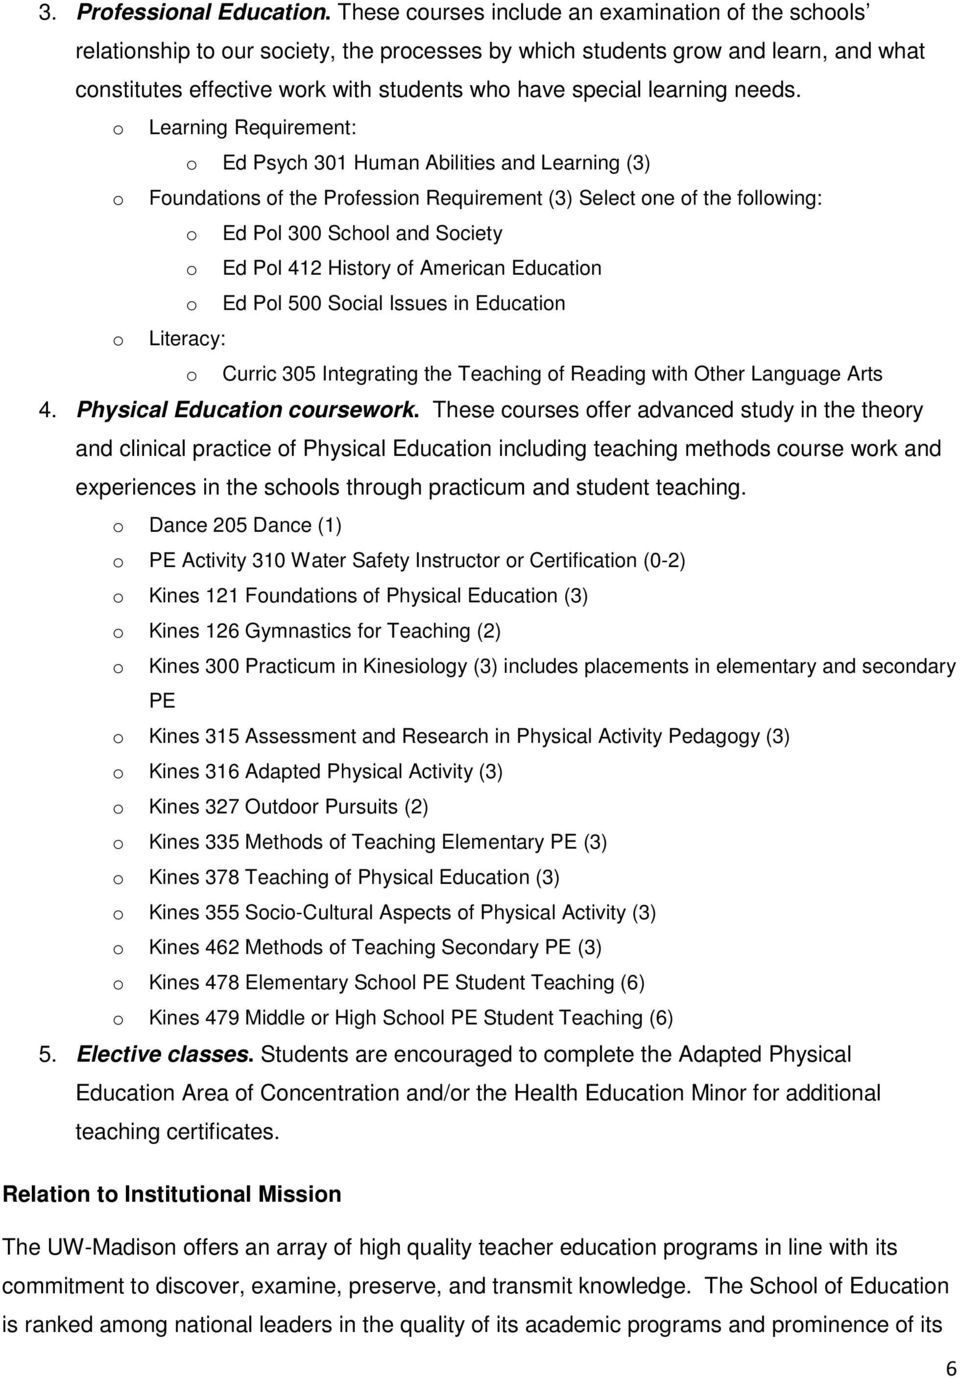 Learning Requirement: Ed Psych 301 Human Abilities and Learning (3) Fundatins f the Prfessin Requirement (3) Select ne f the fllwing: Ed Pl 300 Schl and Sciety Ed Pl 412 Histry f American Educatin Ed